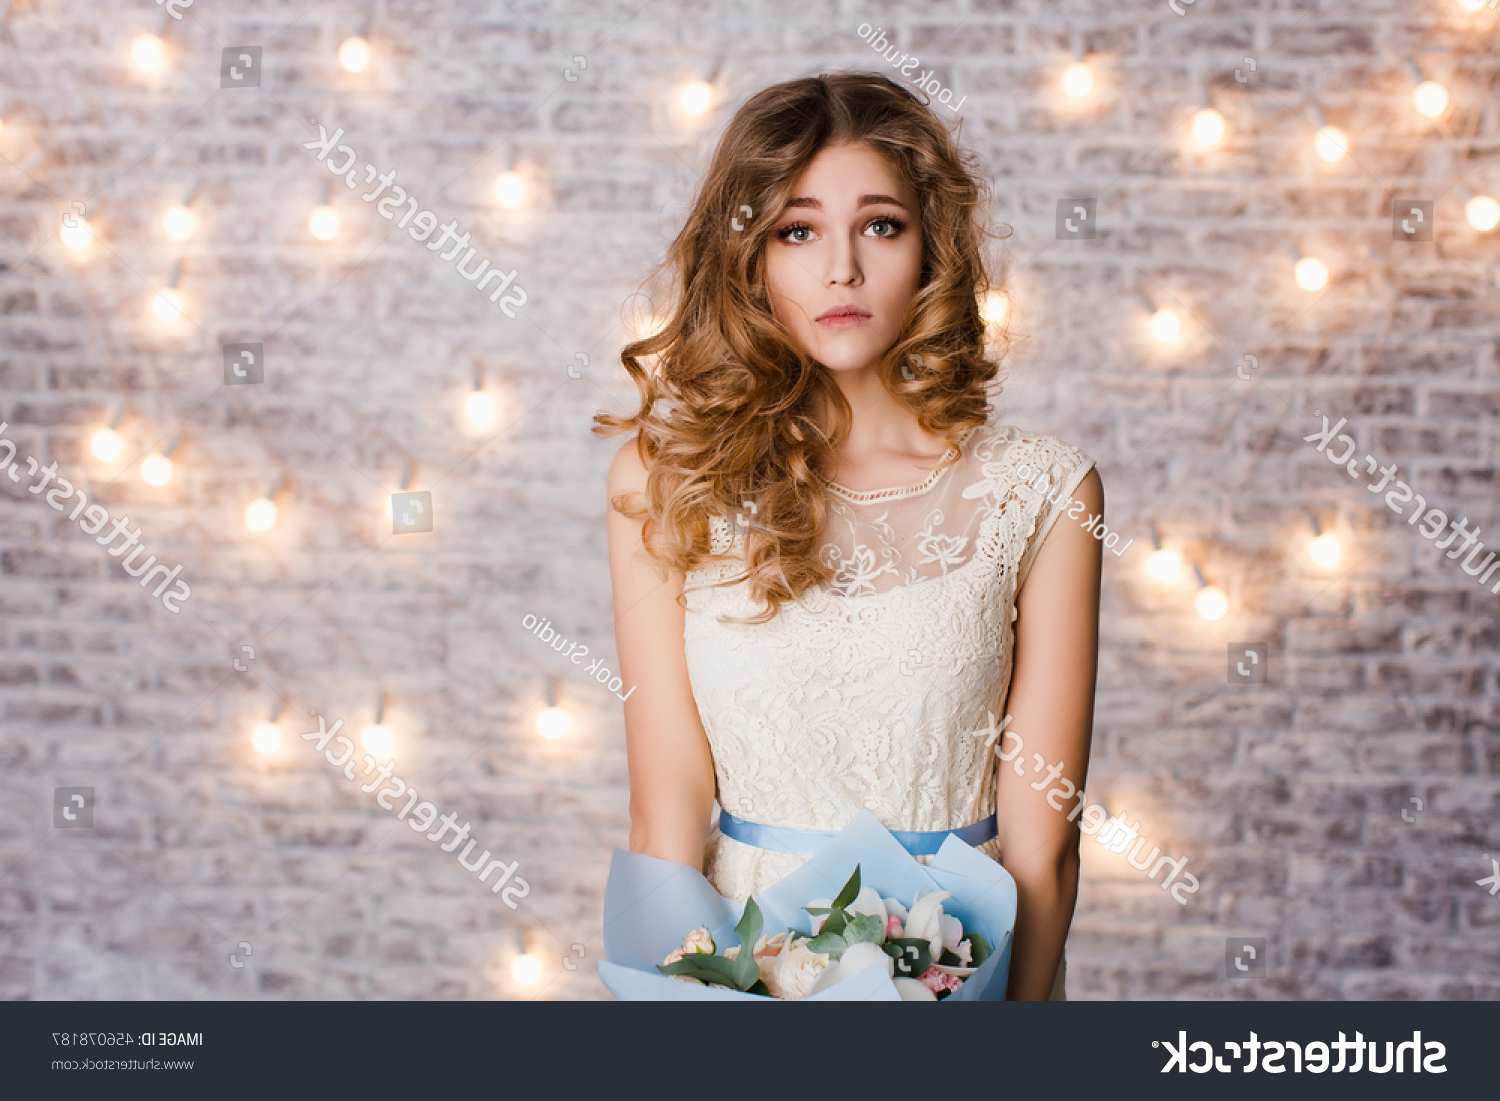 Latest Tender Shapely Curls Hairstyles For A Romantic Wedding Look Within Cute Tender Slim Girl Blond Curly Stock Photo (Edit Now) 456078187 (Gallery 15 of 20)